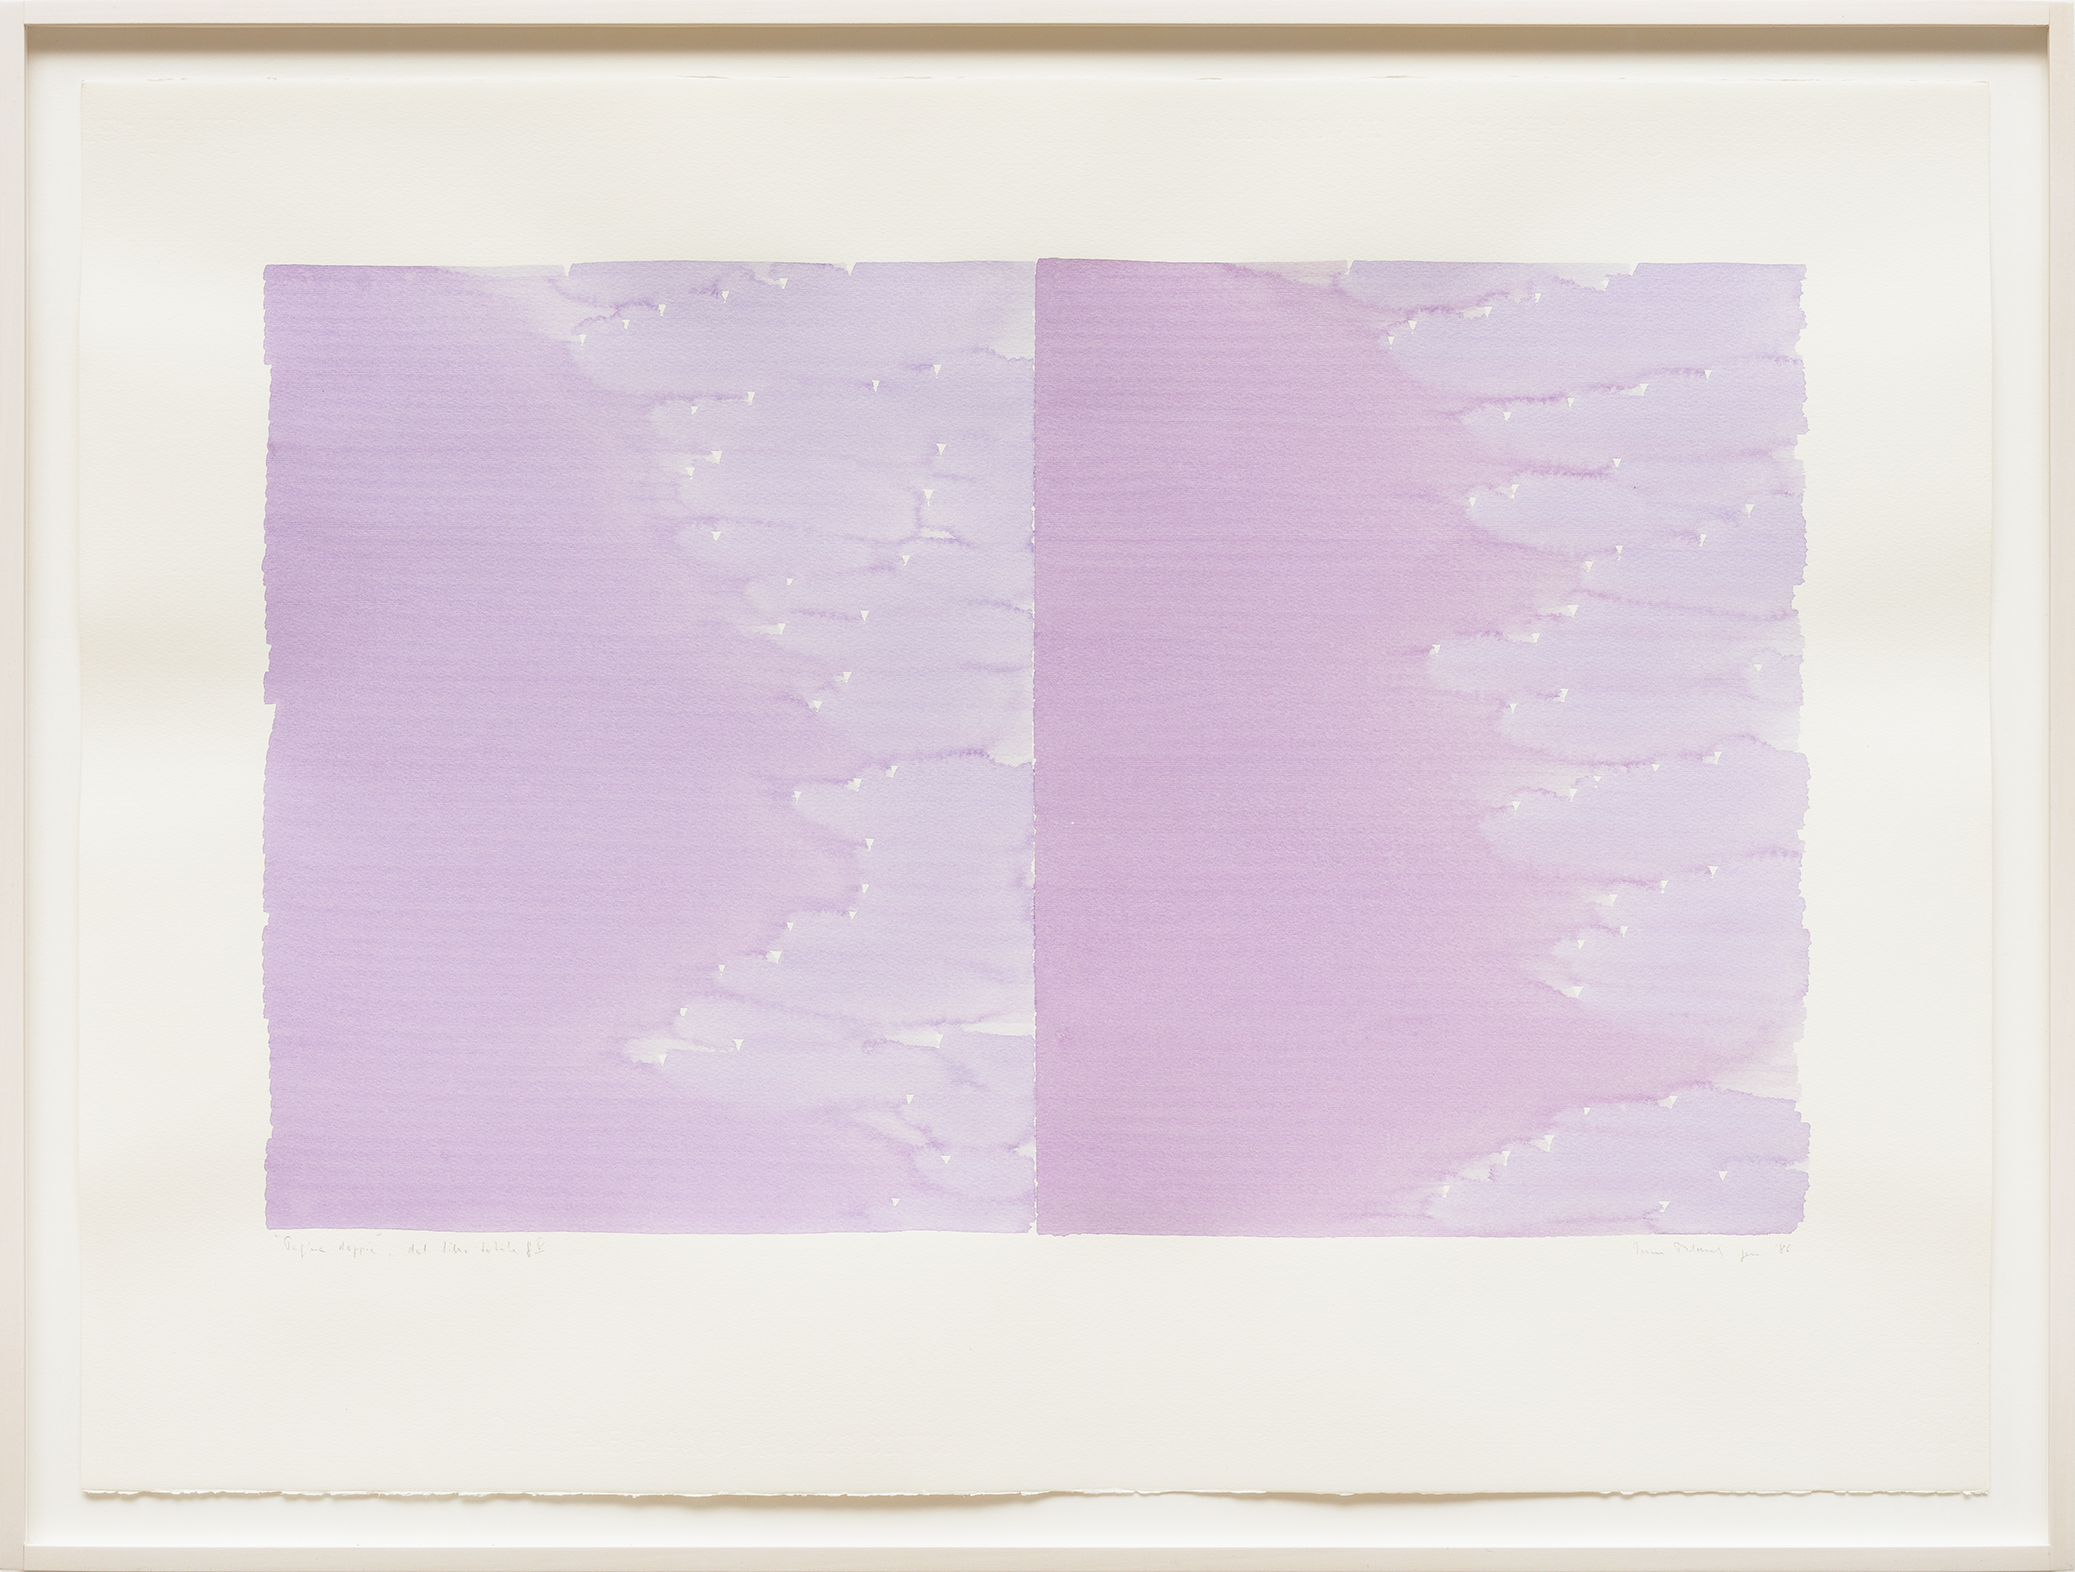 Radical Writings, Pagina doppia, dal libro totale g V, watercolor on paper, 56 x 76 cm, 1986